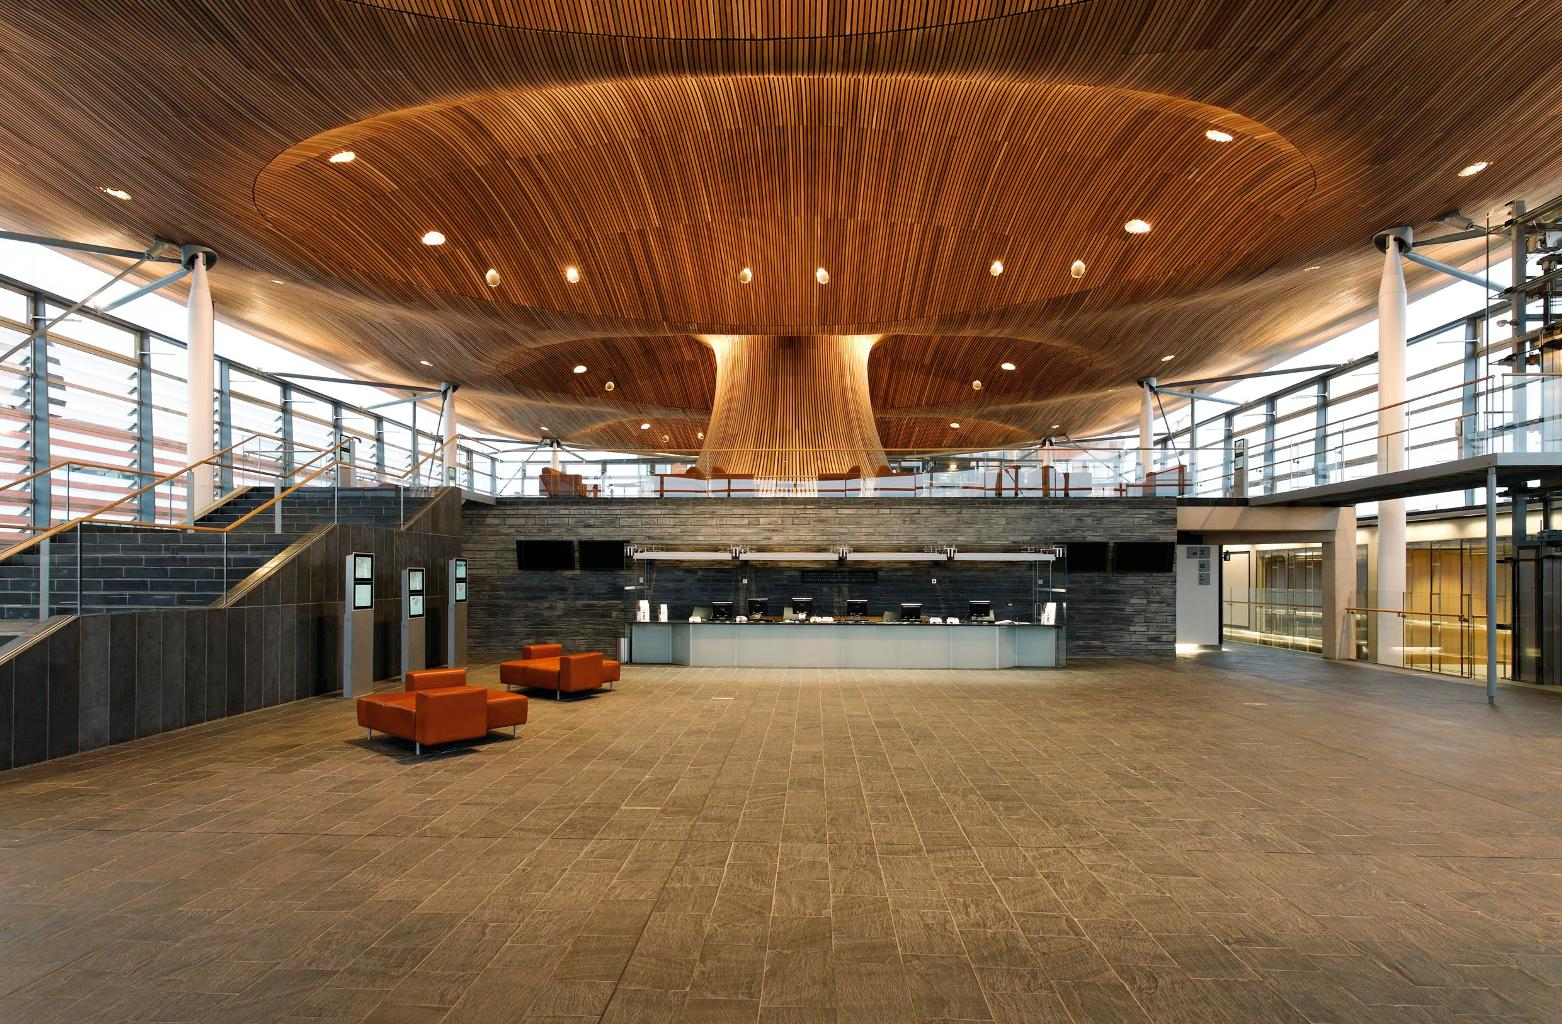 The Senedd, The National Assembly Building for Wales